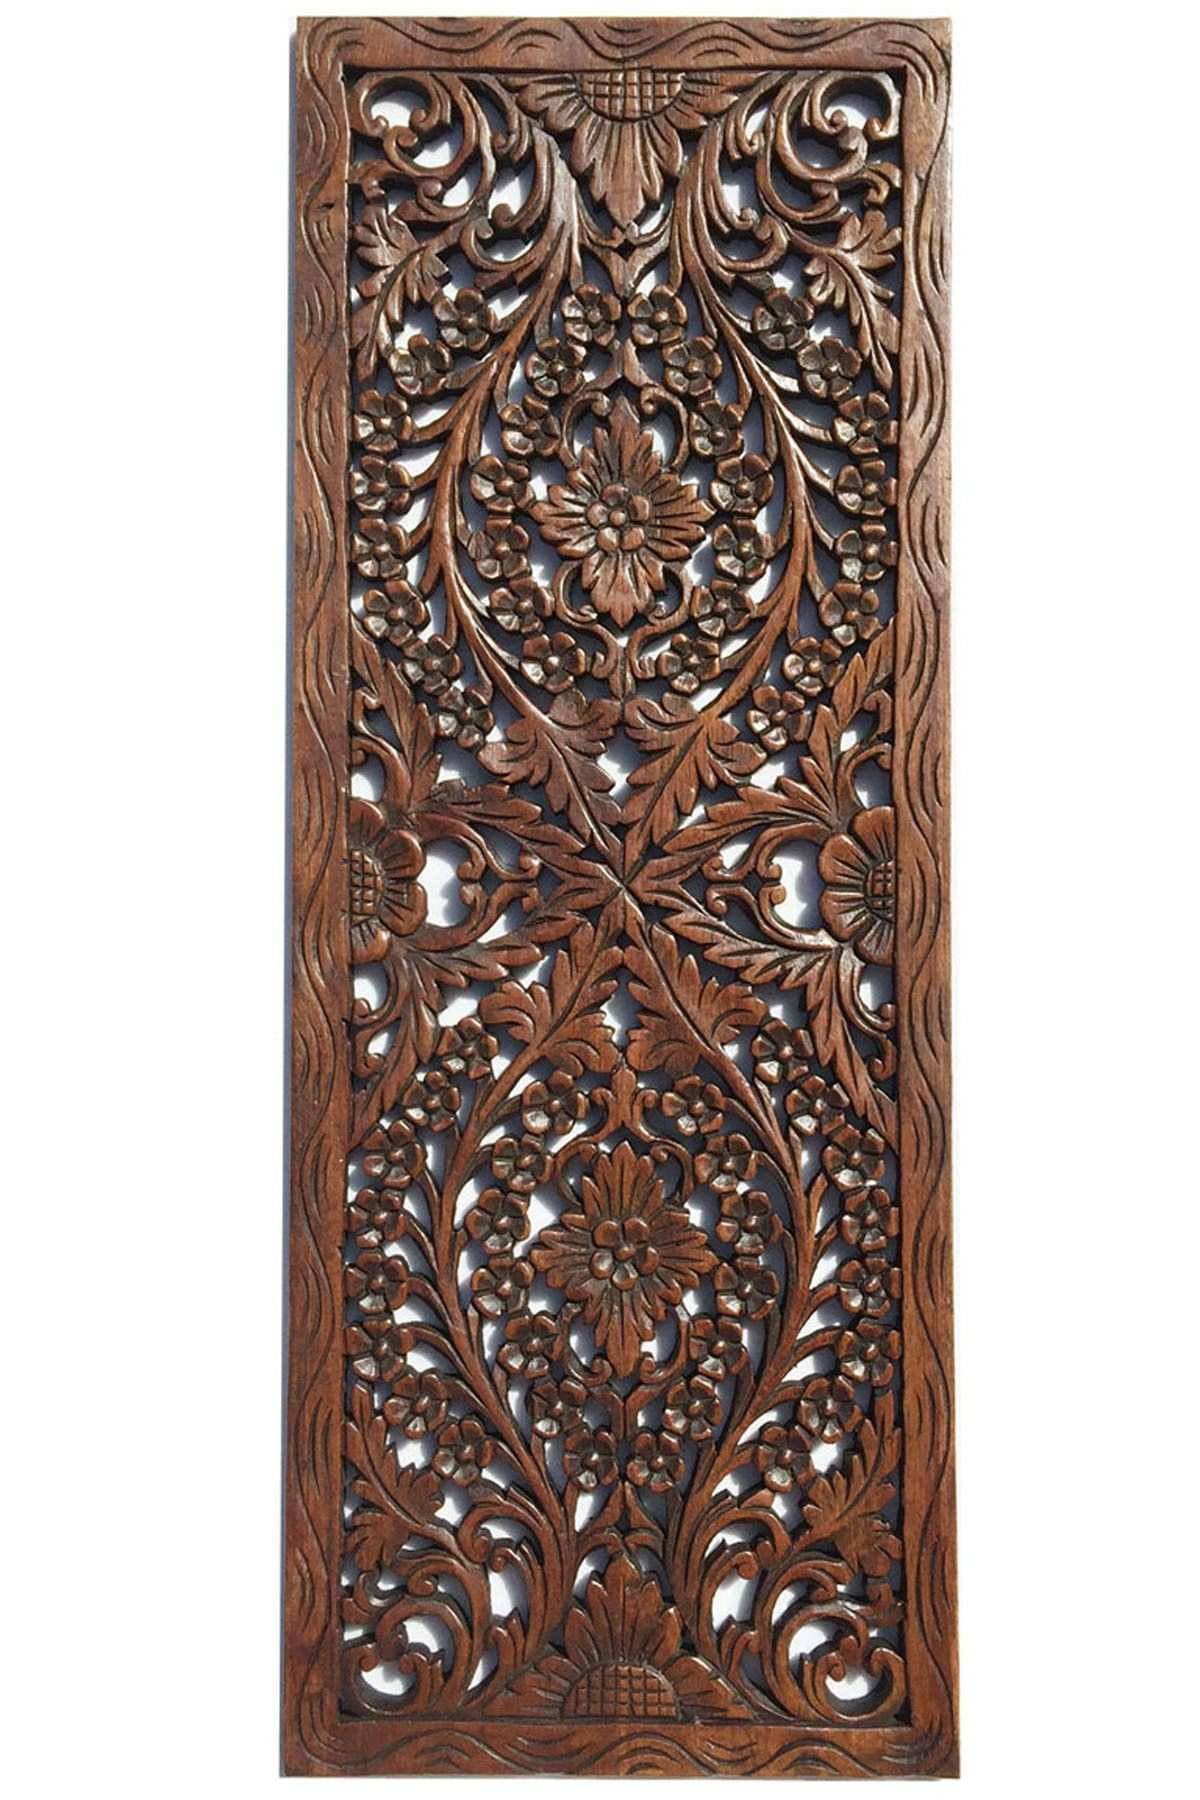 Floral Wood Carved Wall Panel Wall Hanging Asian Home Decor